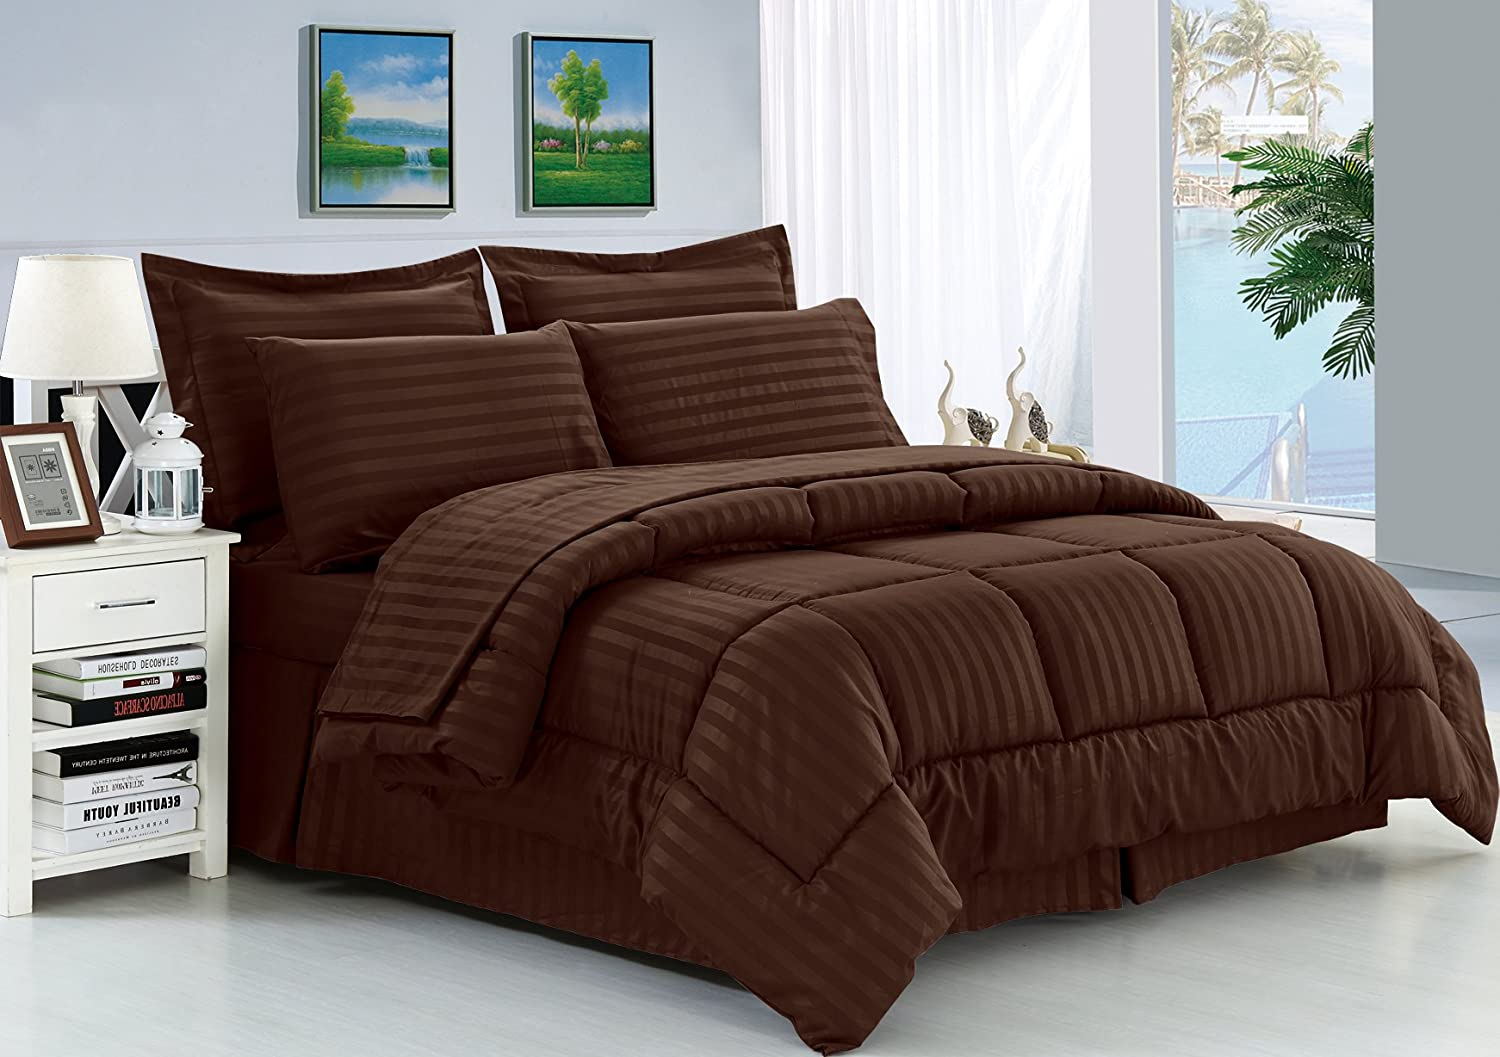 Luxury Silky Soft Dobby Stripe Bed-in-a-Bag